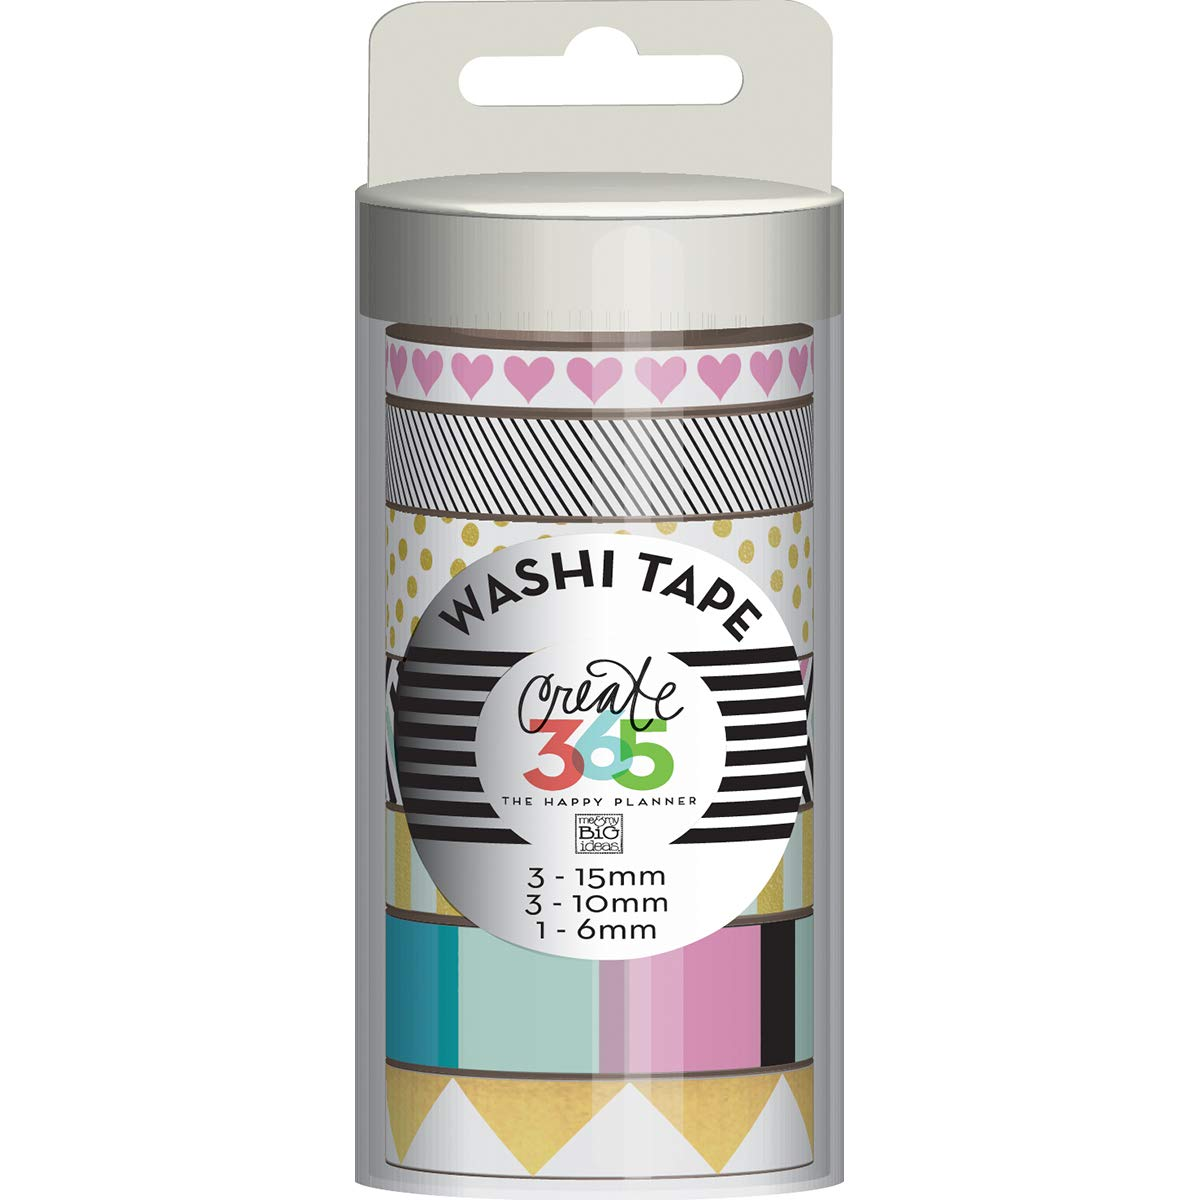 Me and My Big Ideas Create 365 Collection Washi Tape Black and White (12 Pack)